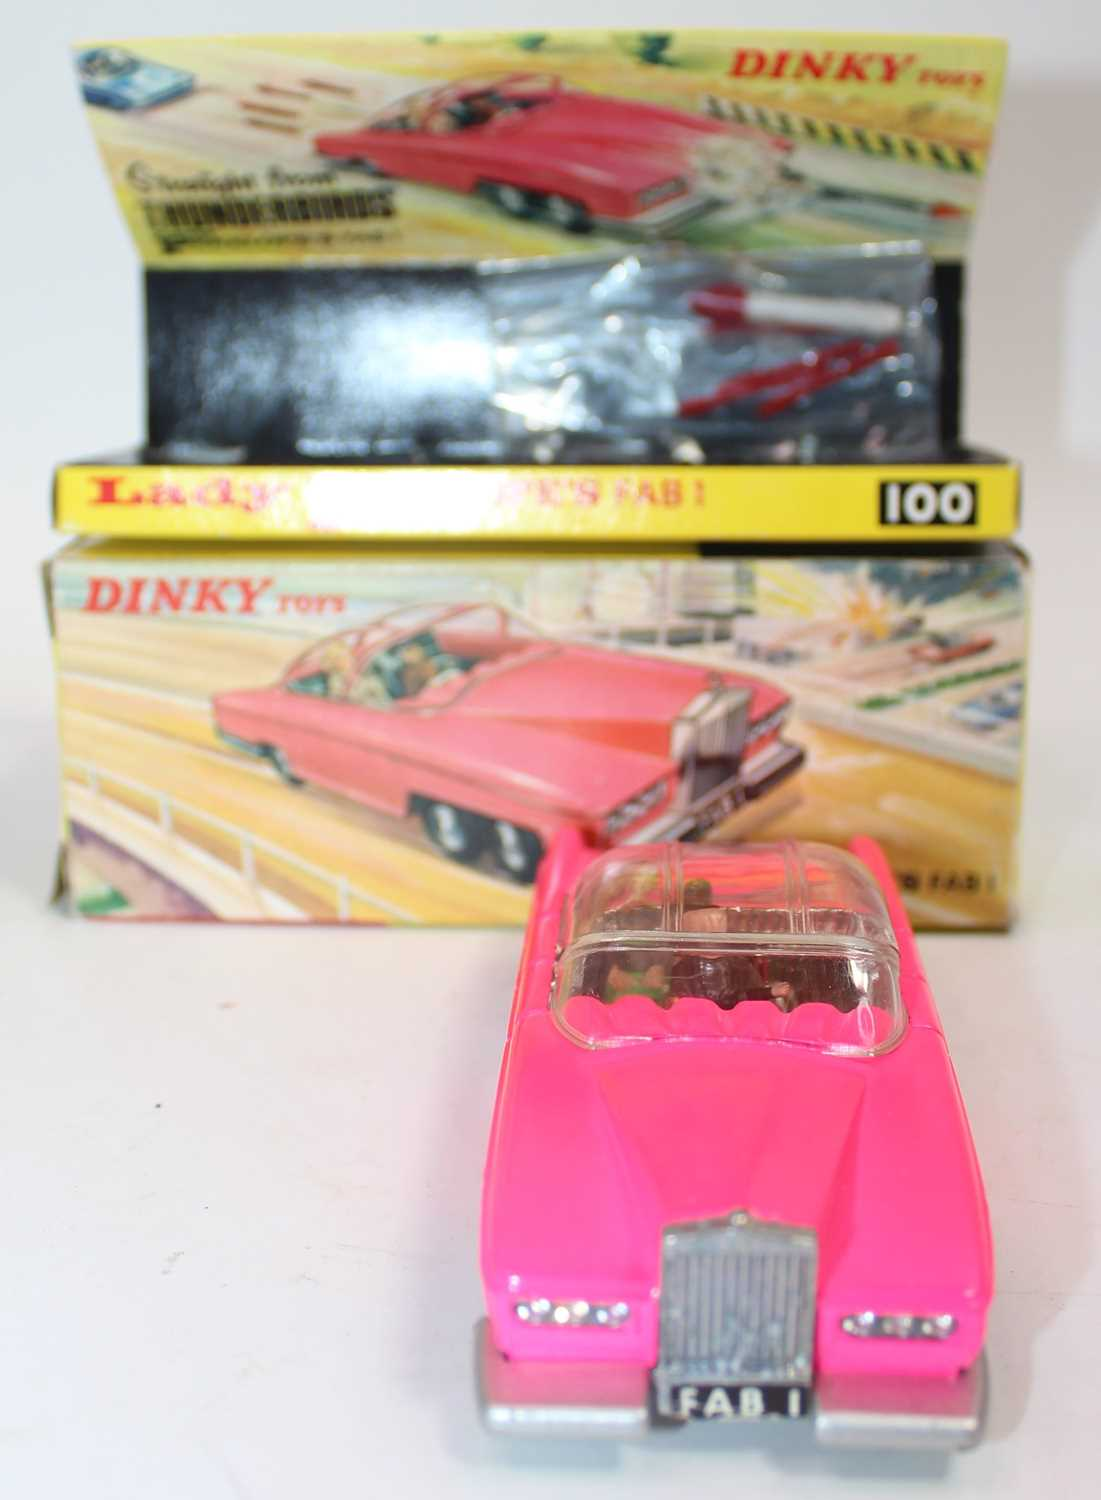 Dinky Toys Boxed 100 Lady Penelopes FAB 1 From TV series 'Thunderbirds' in the rarer fluorescent - Image 3 of 7